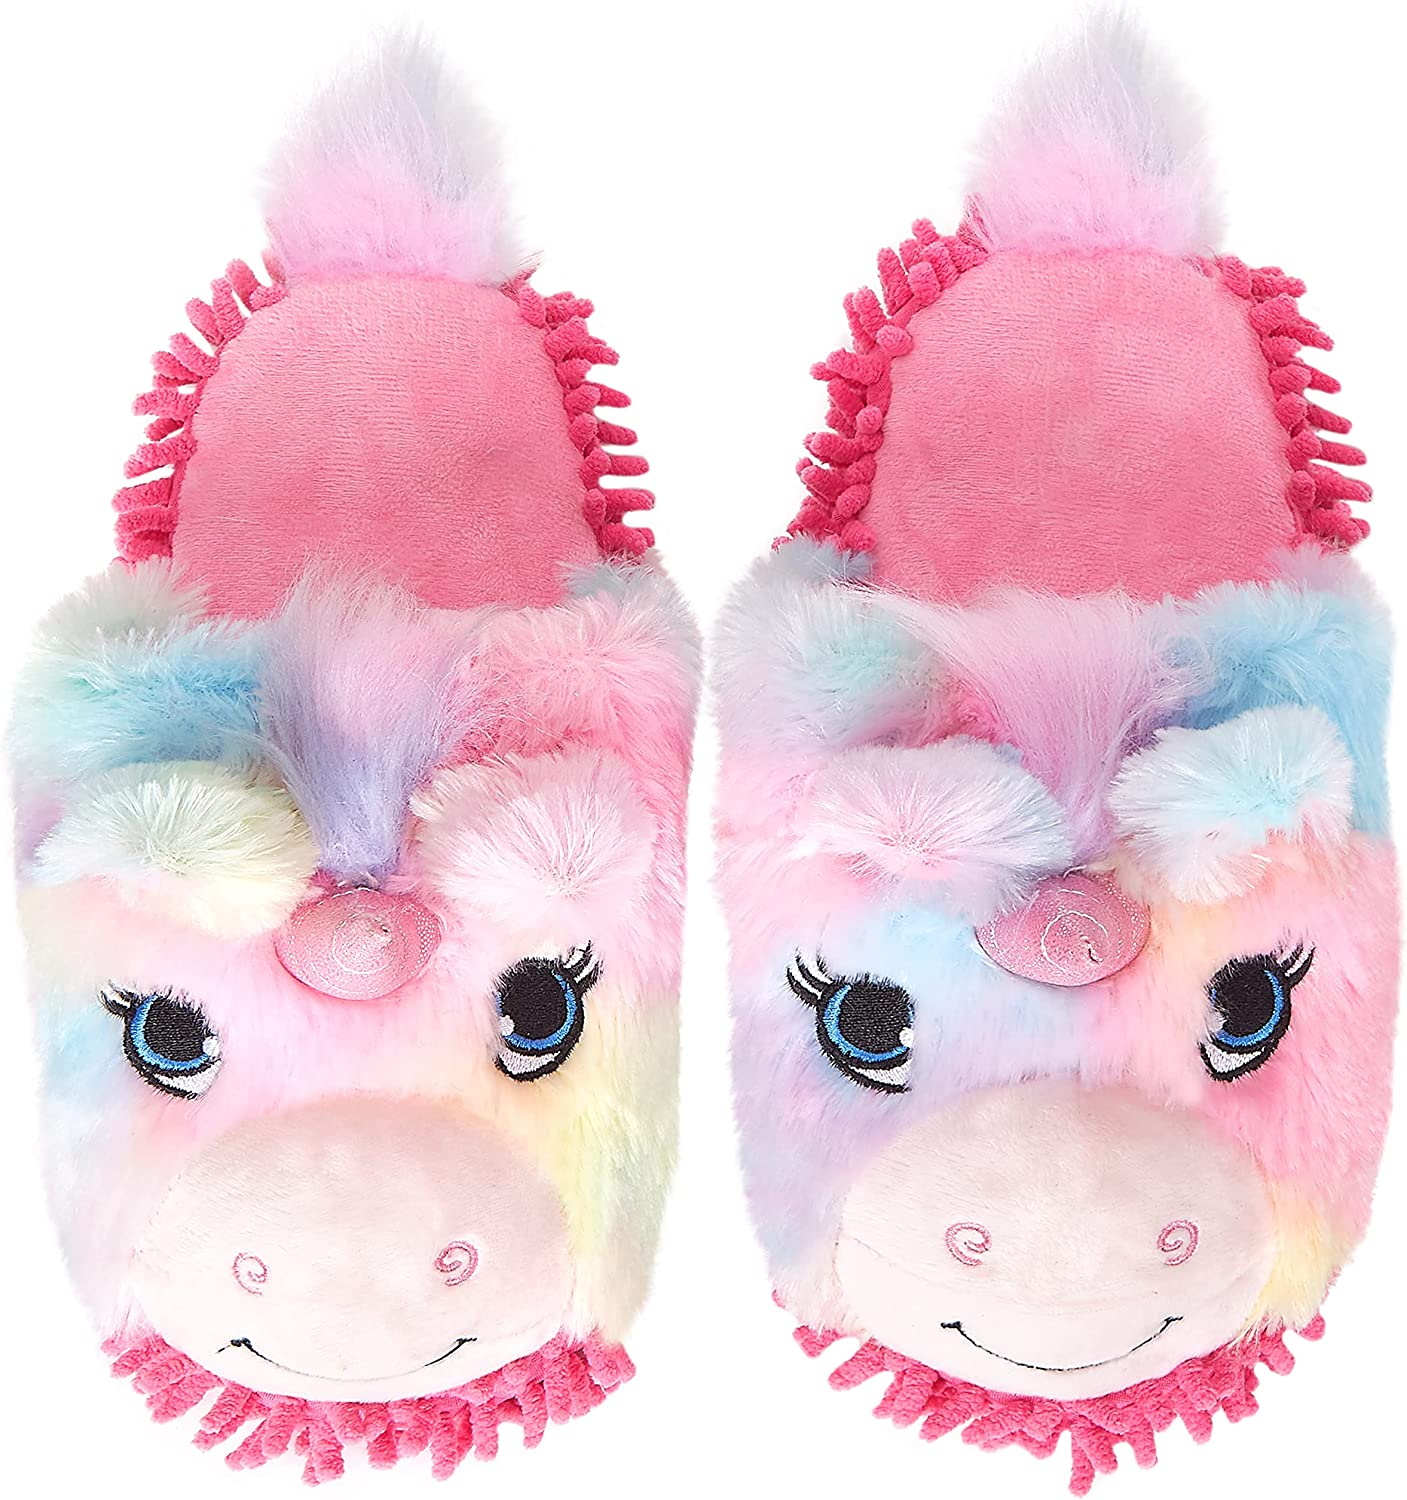 Cozy Memory Rainbow Plush Unicorn Mop Slippers for Women Home Cleaning Helper Microfiber Sole Lightweight Animal House Shoes for Bathroom Office Kitchen Gifts for Girls